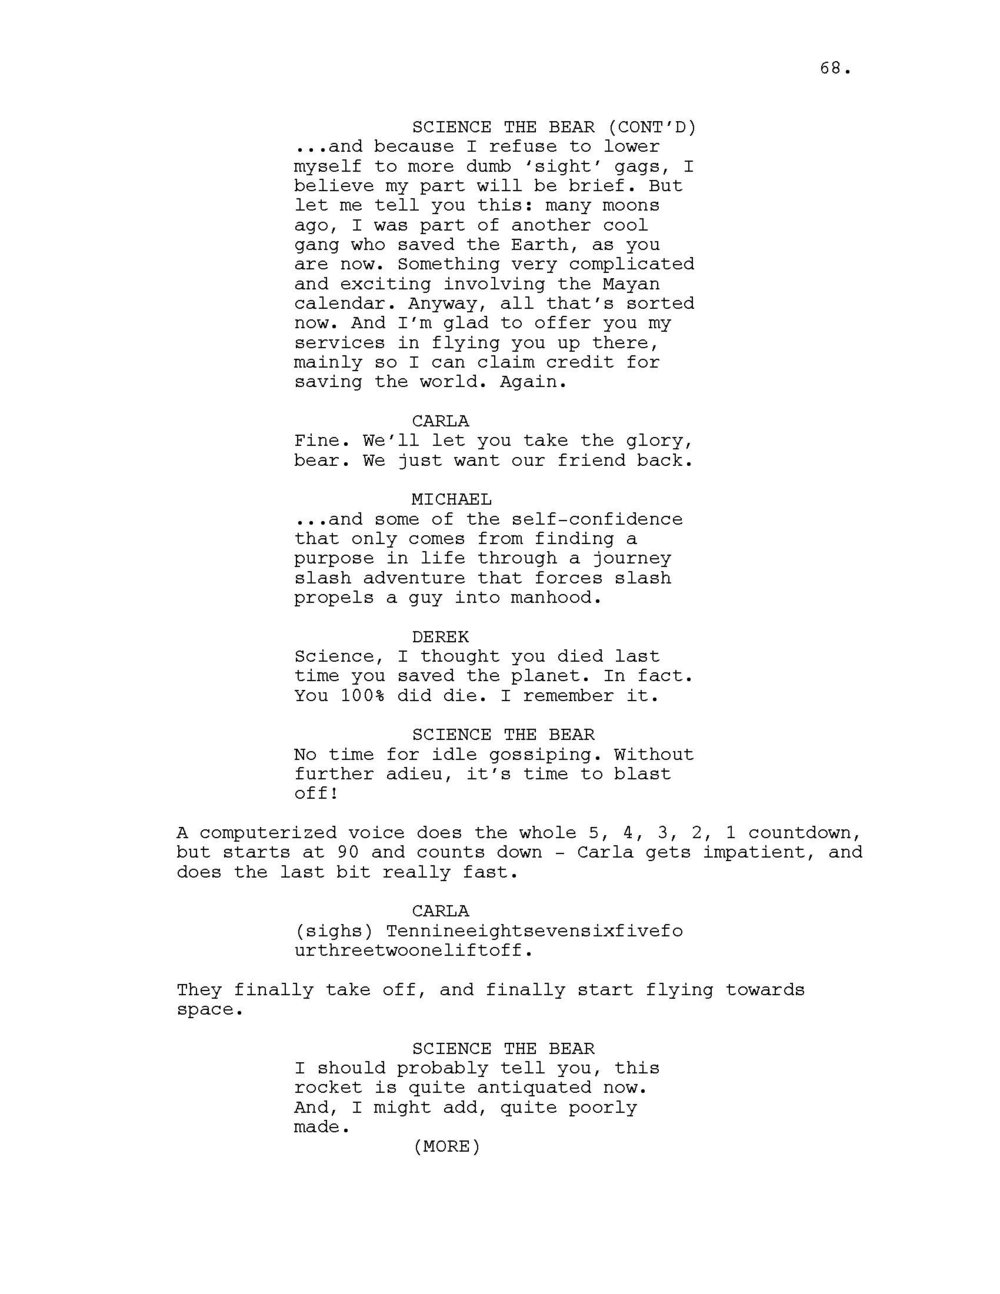 INVISIBLE WORLD SCRIPT_Page_069.jpg